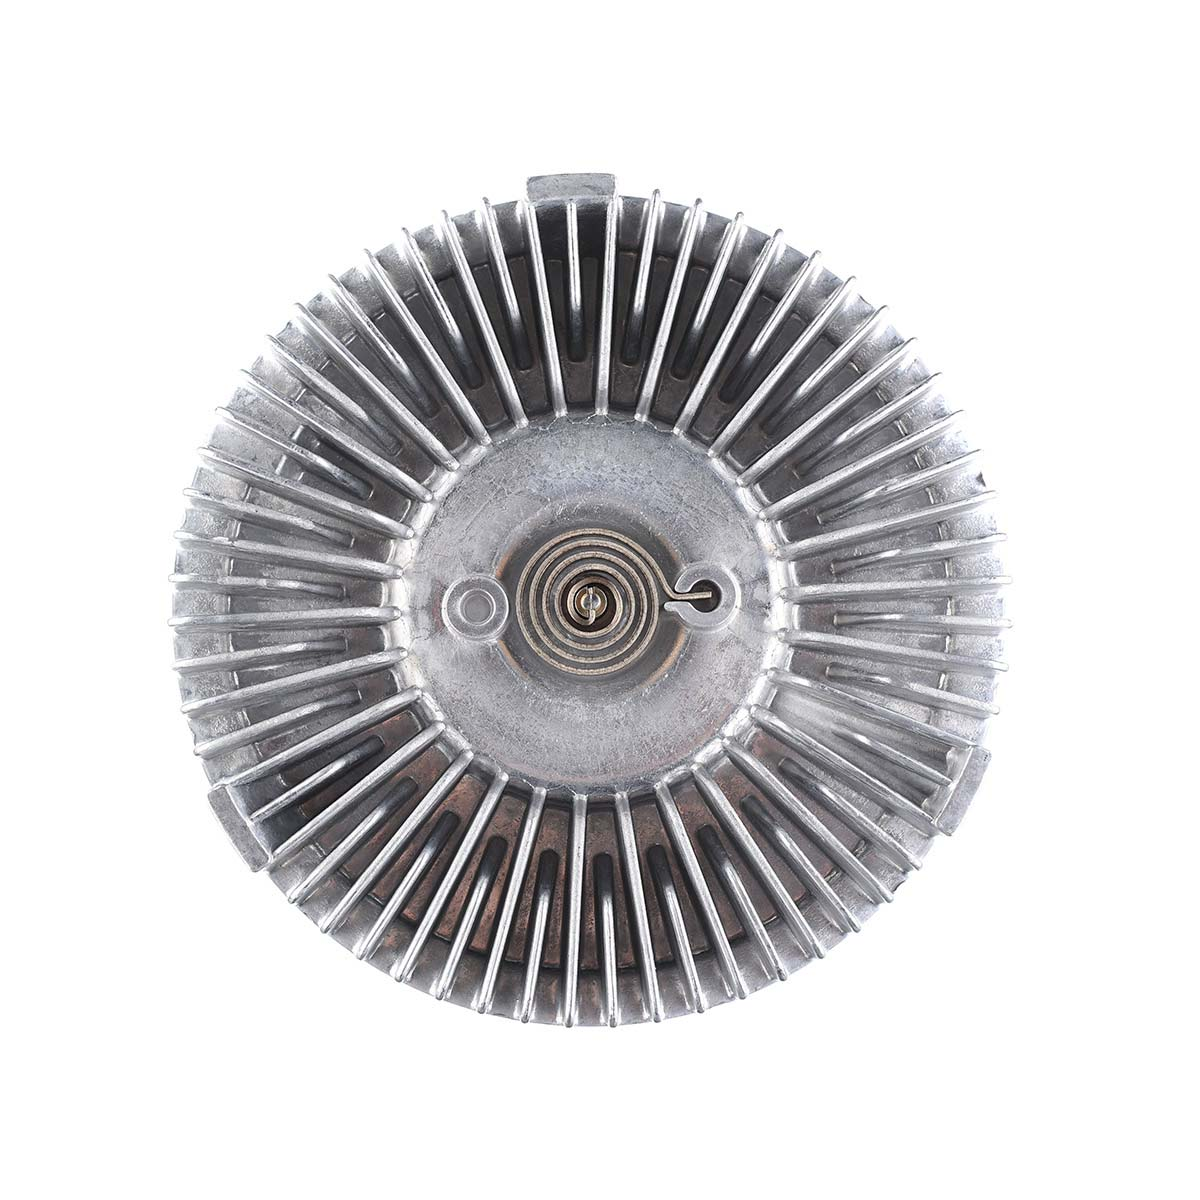 small resolution of engine cooling fan clutch for ford ranger 1998 1999 2011 explorer sport trac mazda b4000 mercury mountaineer 4 0l f87z8a616fa in fans kits from